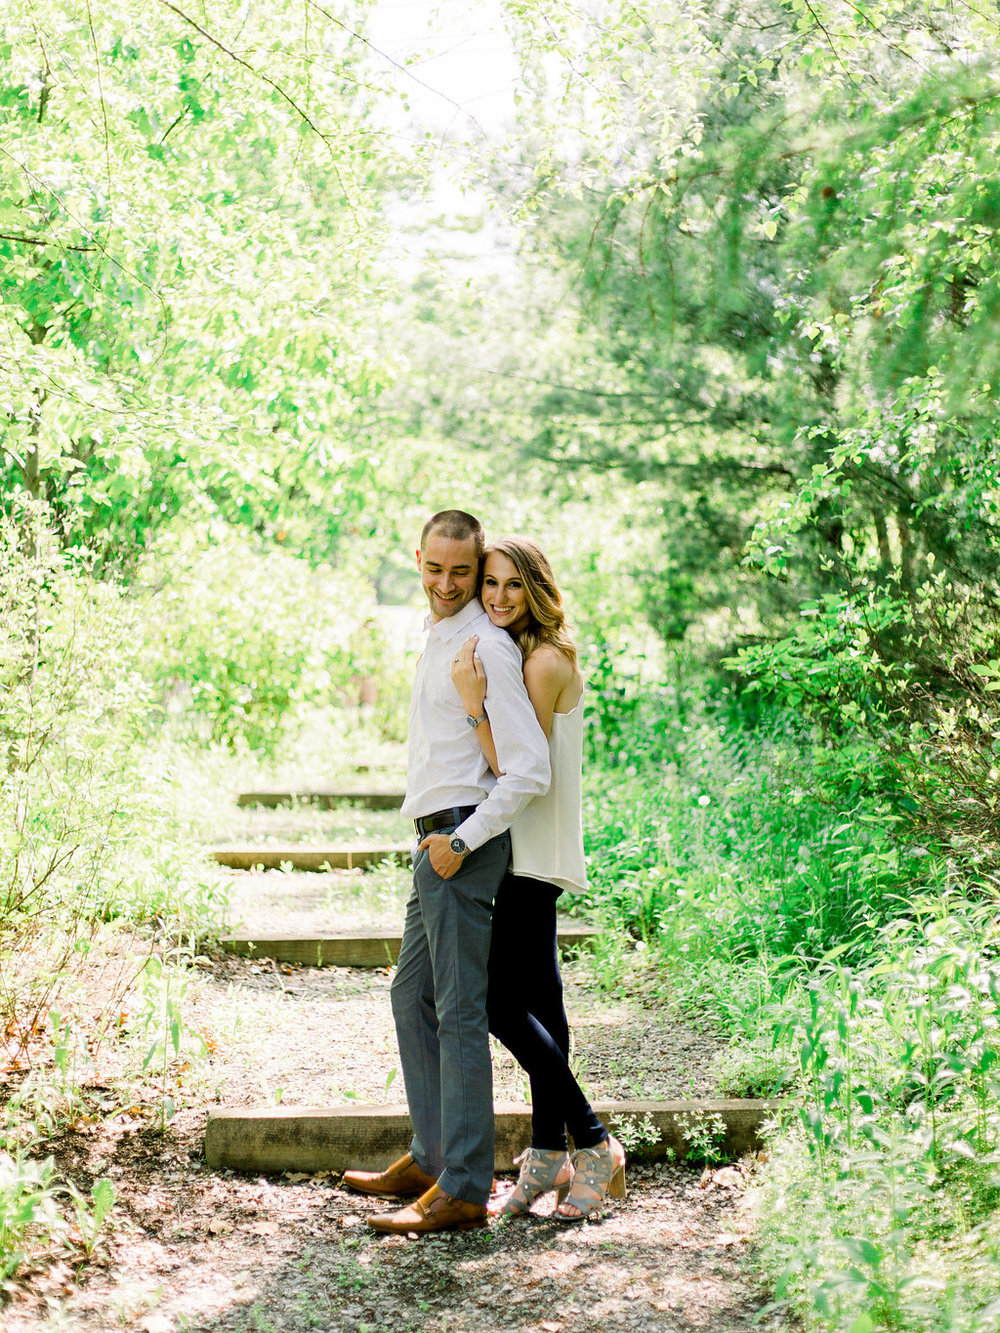 katie_graham_photography_chautauqua_institution_cathryn_smeltzer_kyle_griffith_bemus_point_new_york_wedding_photographer_engagement_photos_photography